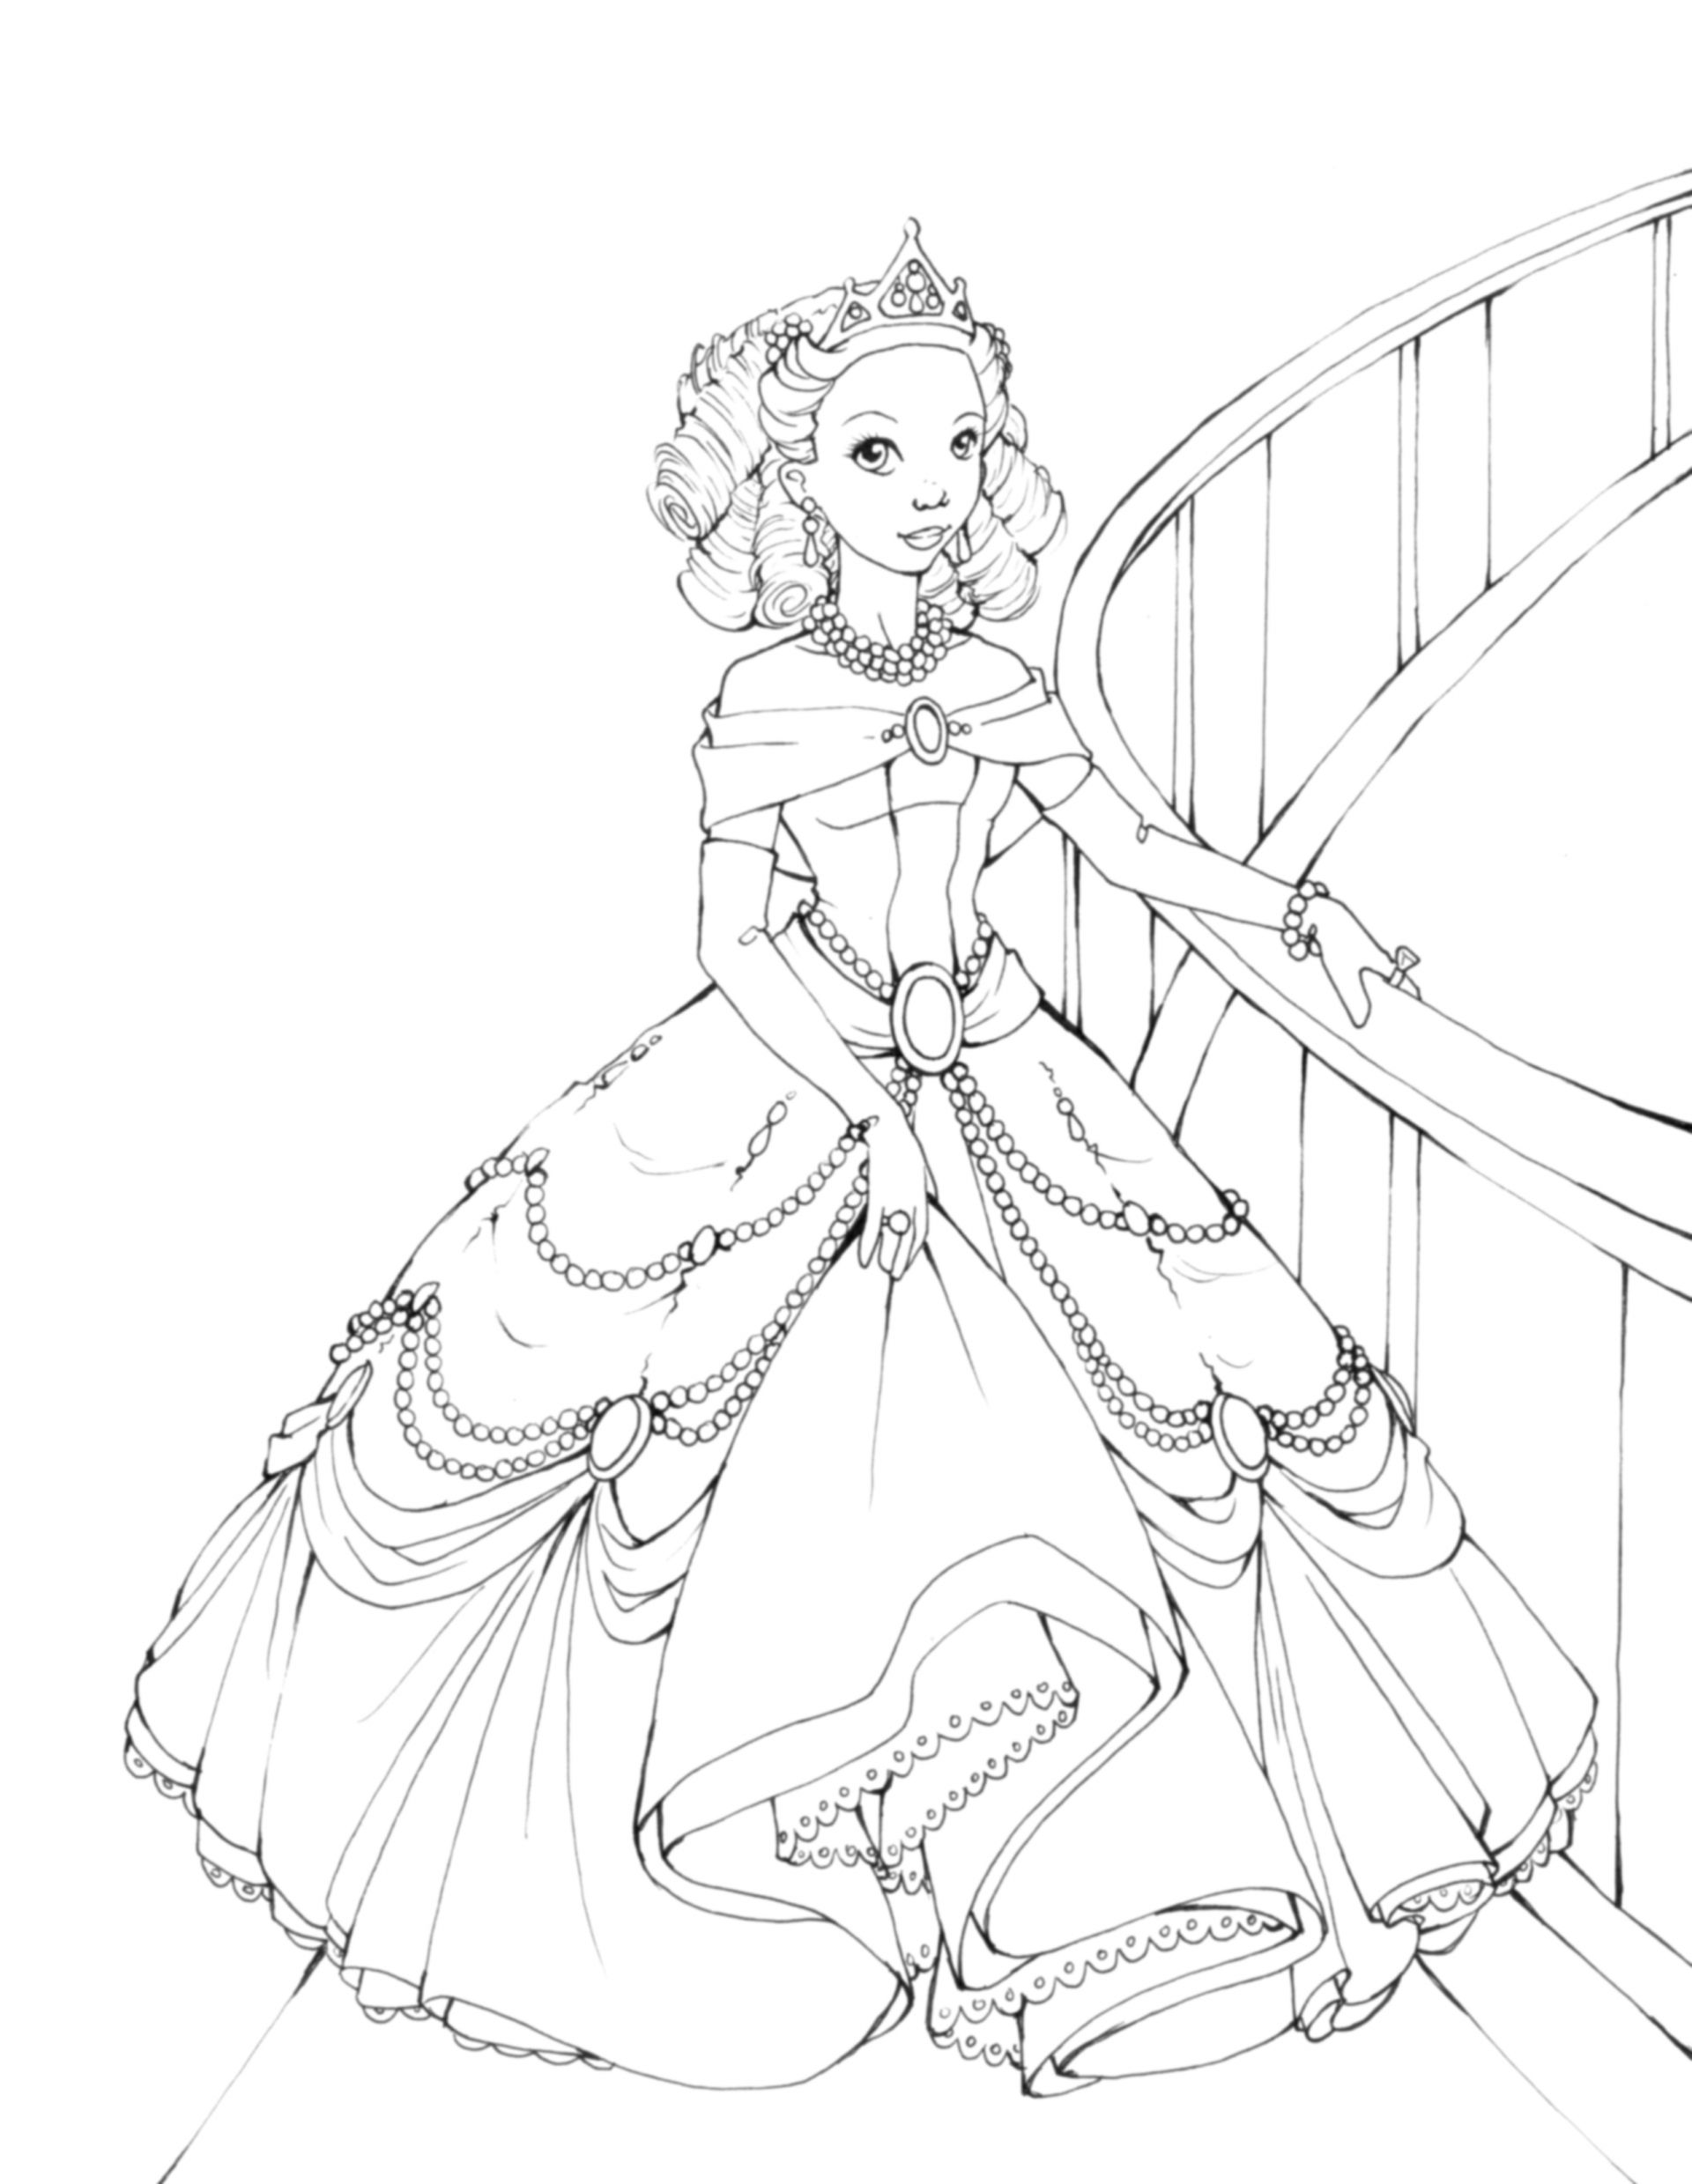 Barbie Coloring Pages | Coloring Pages | Pinterest | Malen und ...